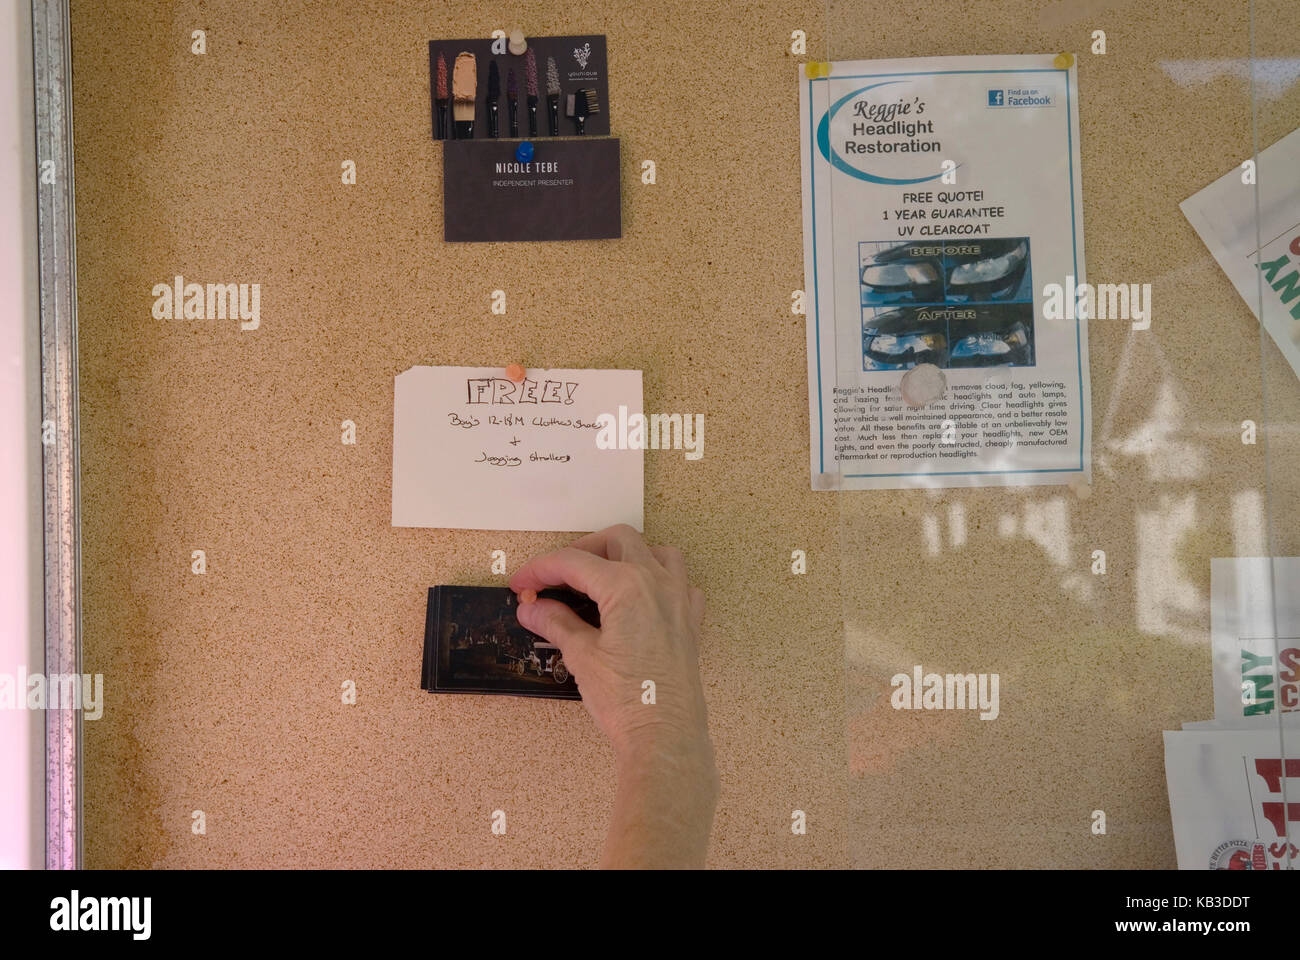 Caucasian woman posting business card on bulletin board at apartment complex, USA. - Stock Image